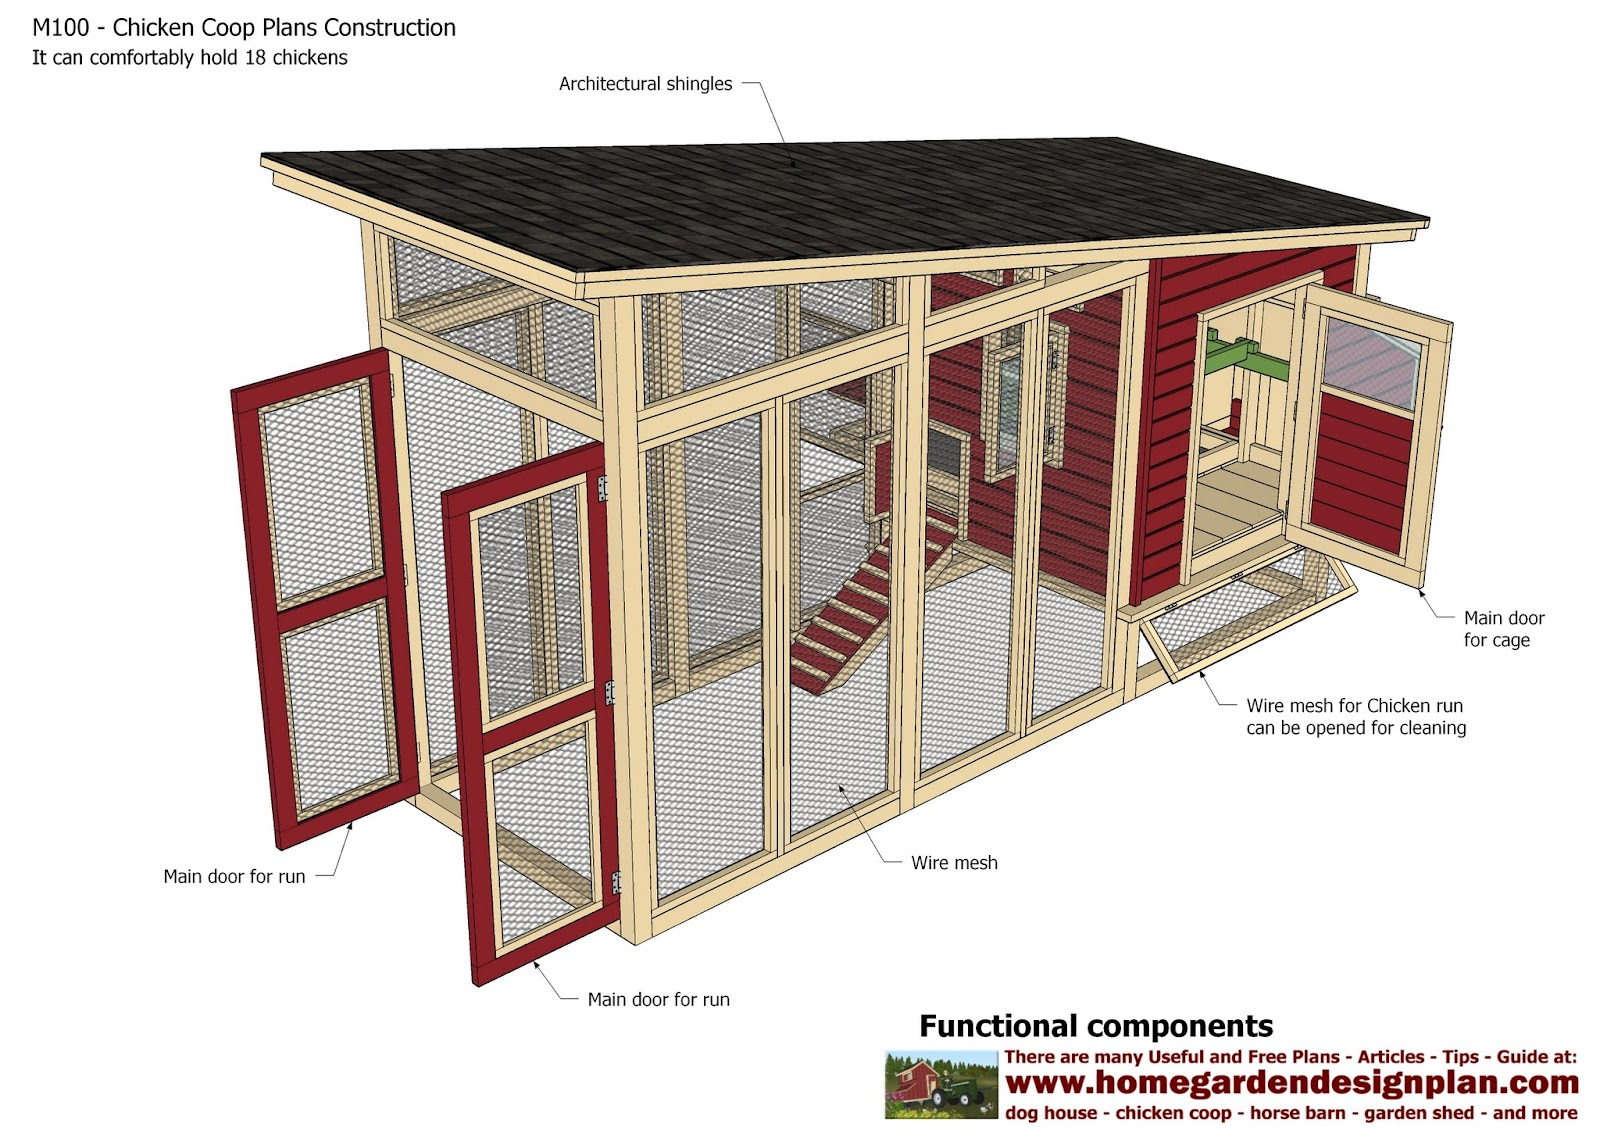 Home garden plans m100 chicken coop plans construction for Plans chicken coop